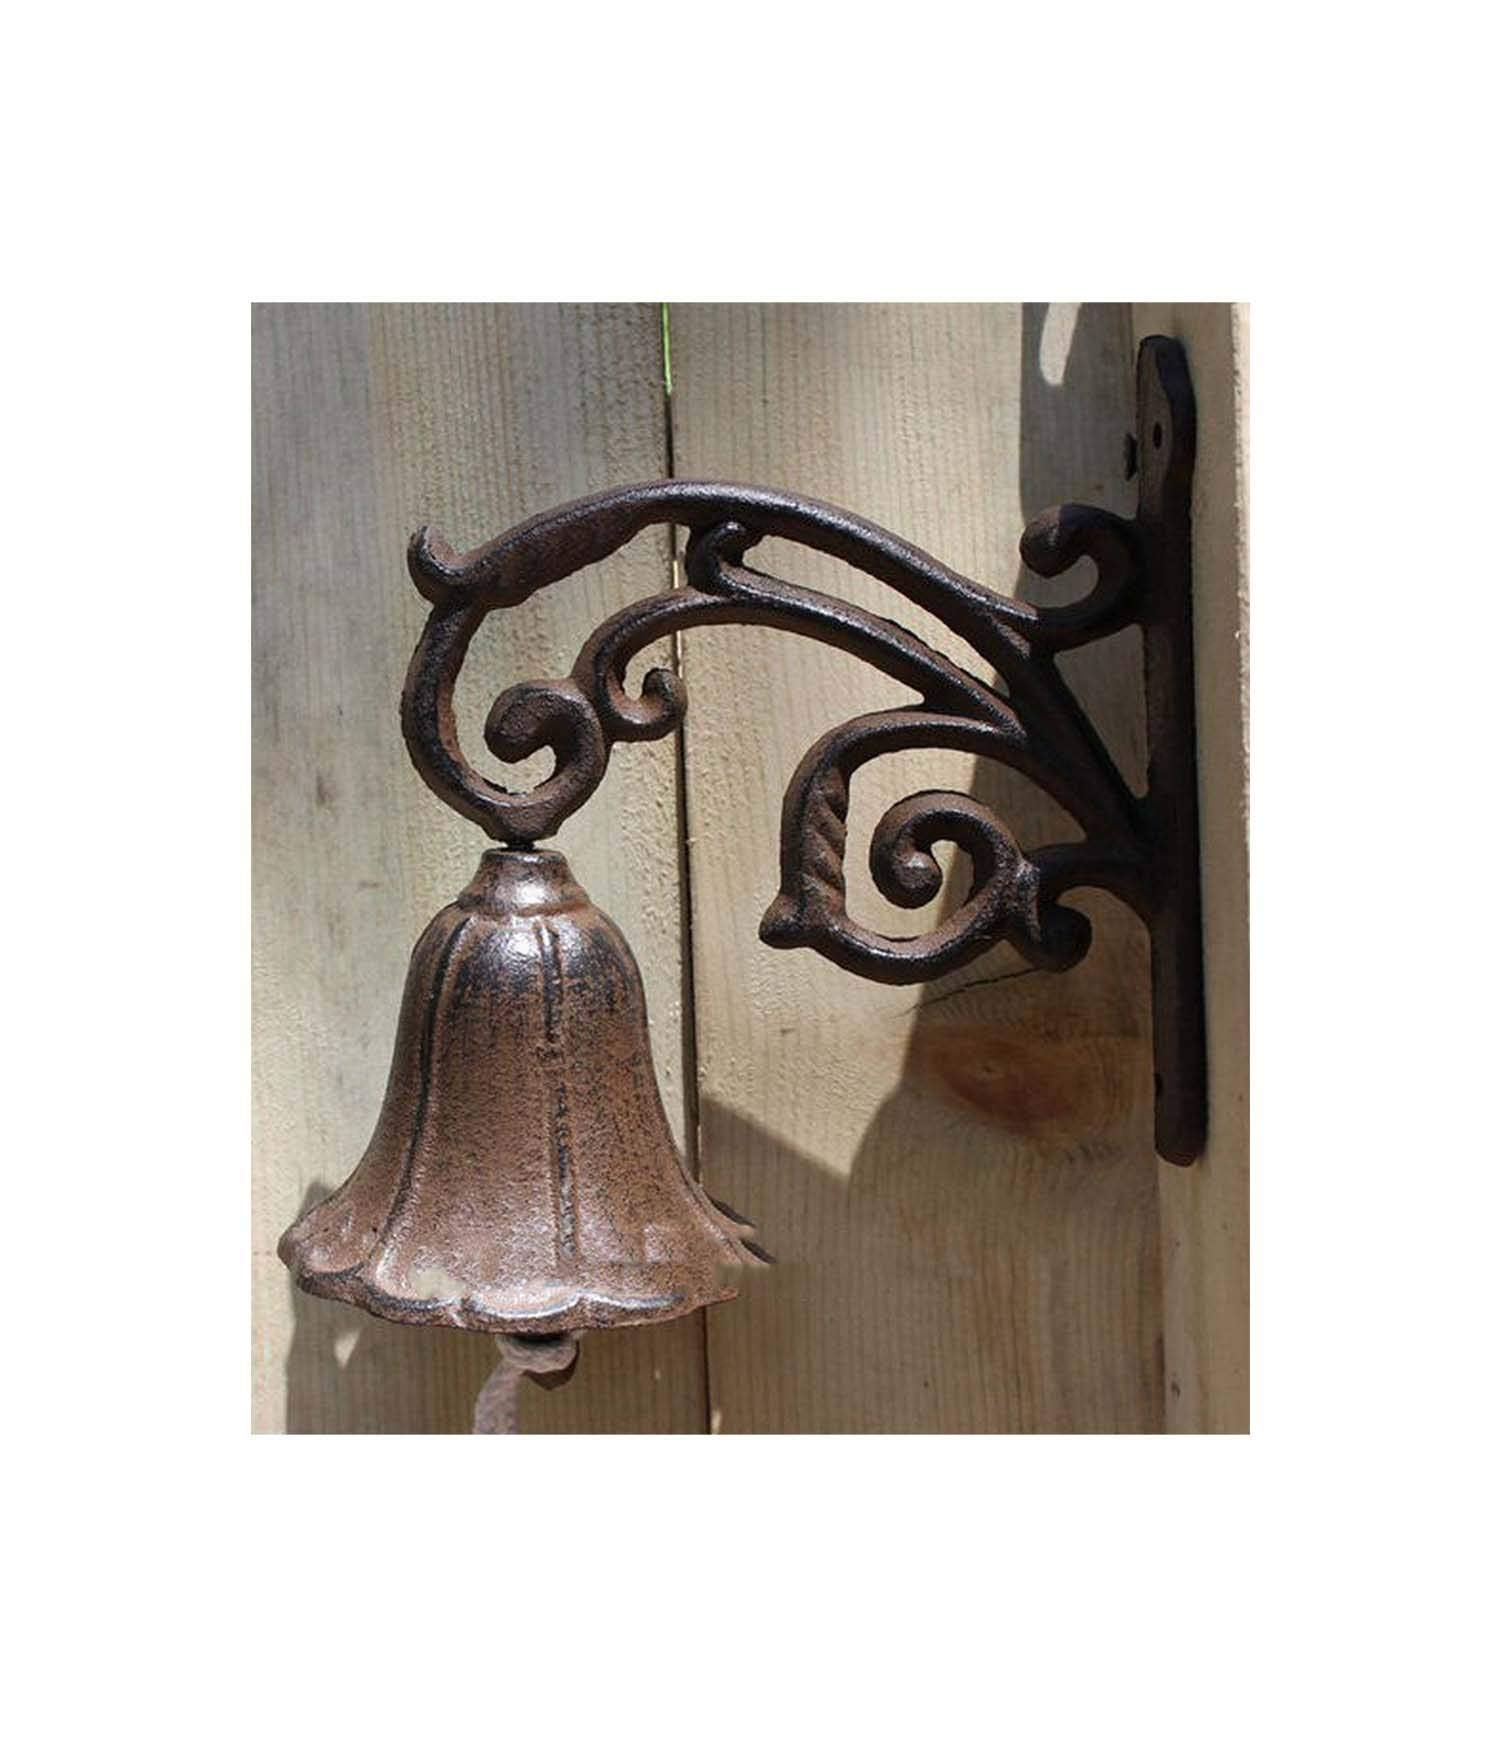 Country Rustic Leaf Door Bell Welcome Dinner Bell Cast Iron Wall Decorative Bell for Home Bar Shop Store Antirustping